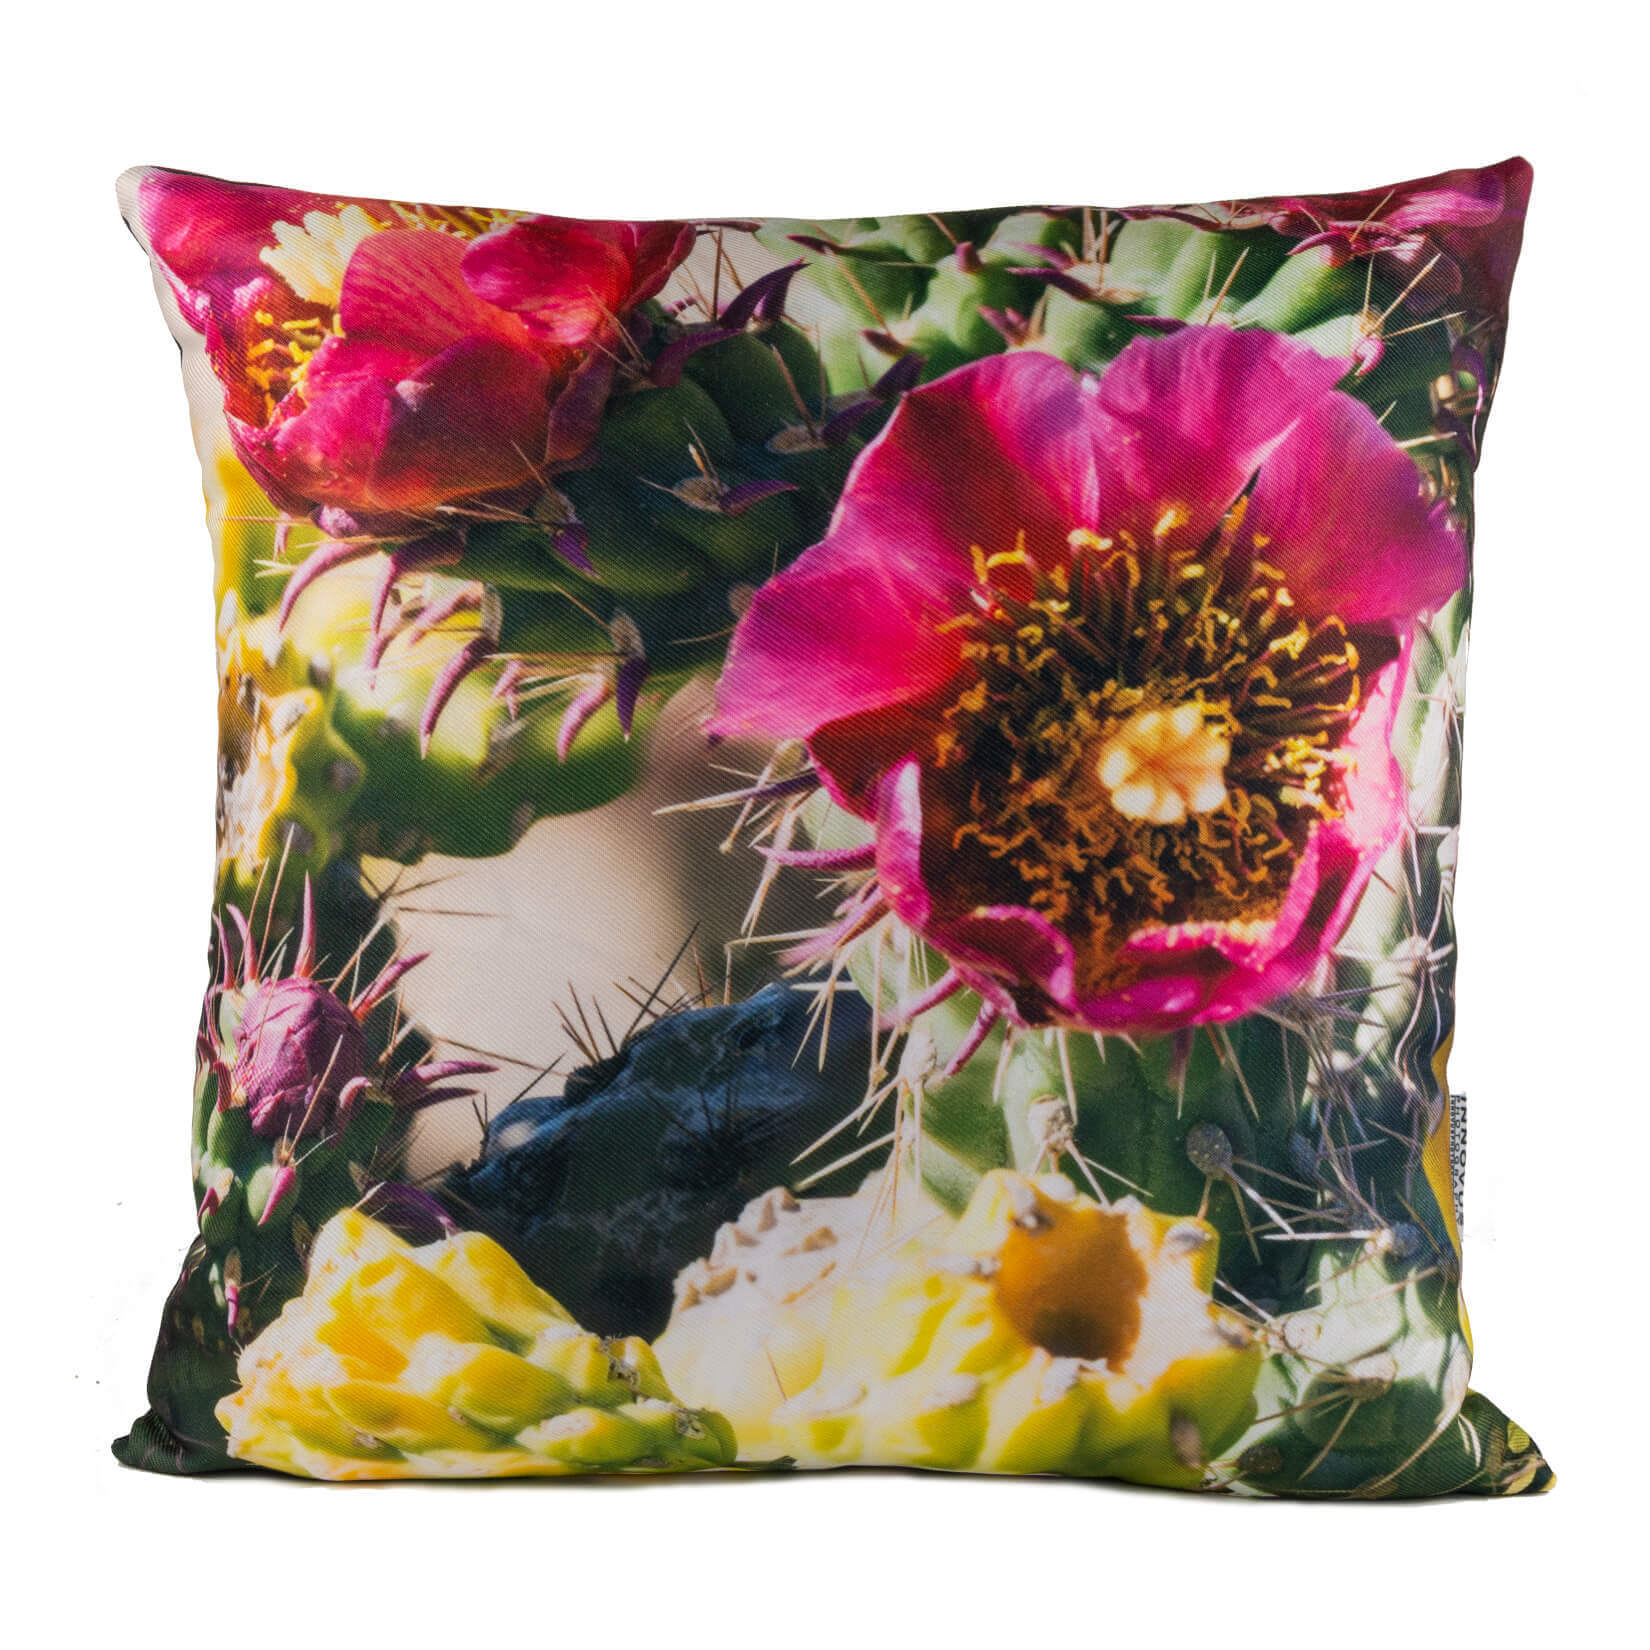 Pink Cactus Flower 14in Throw Pillow